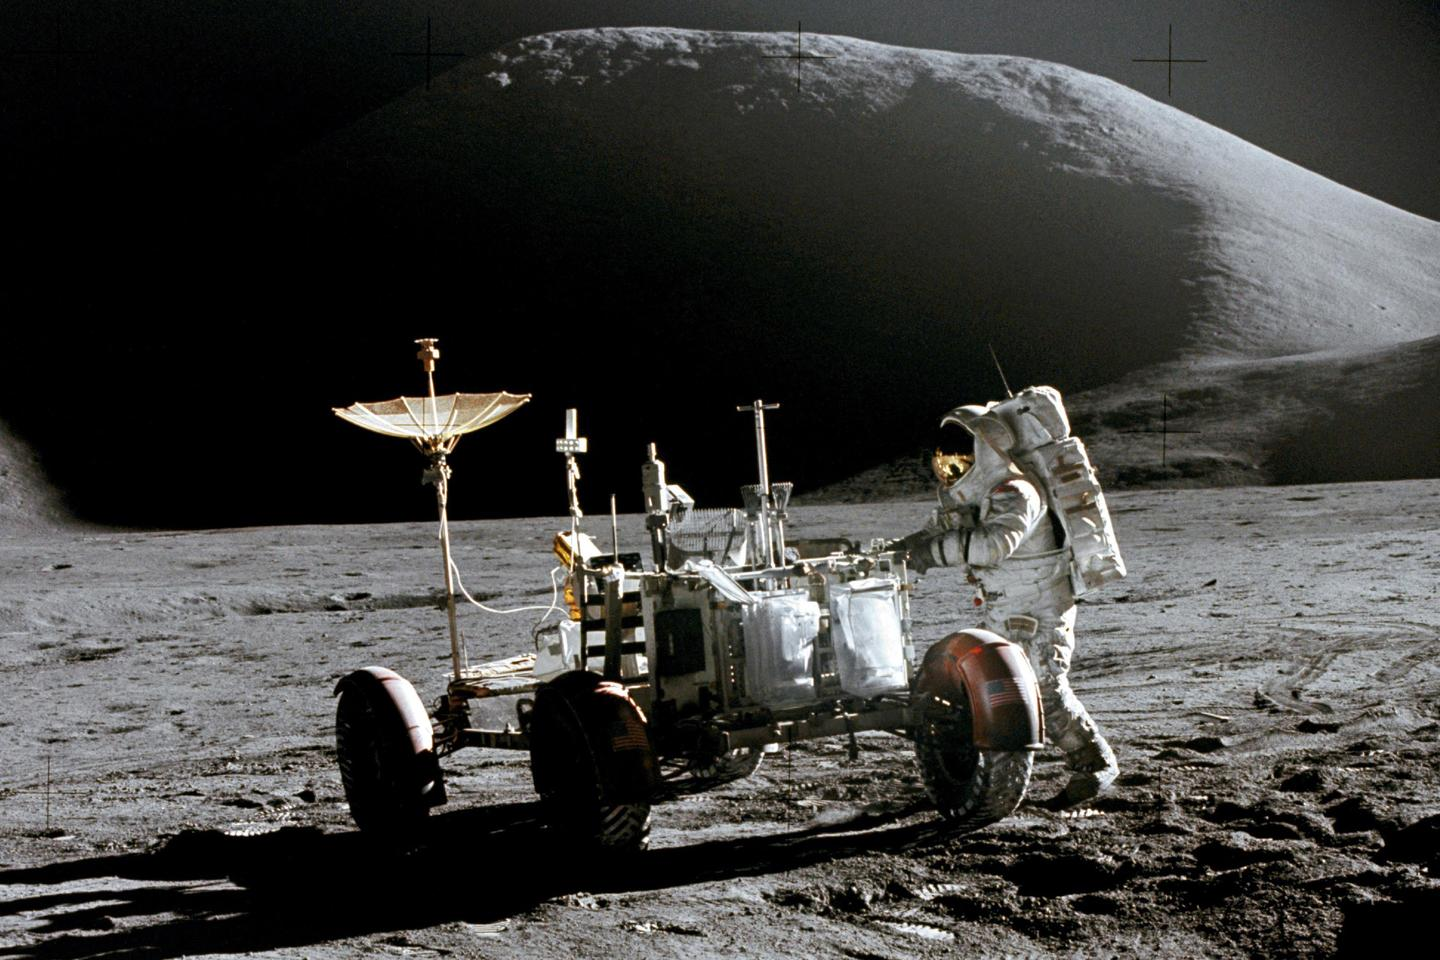 Astronaut James B. Irwin with a not-really-cool-looking lunar rover on the moon in 1971